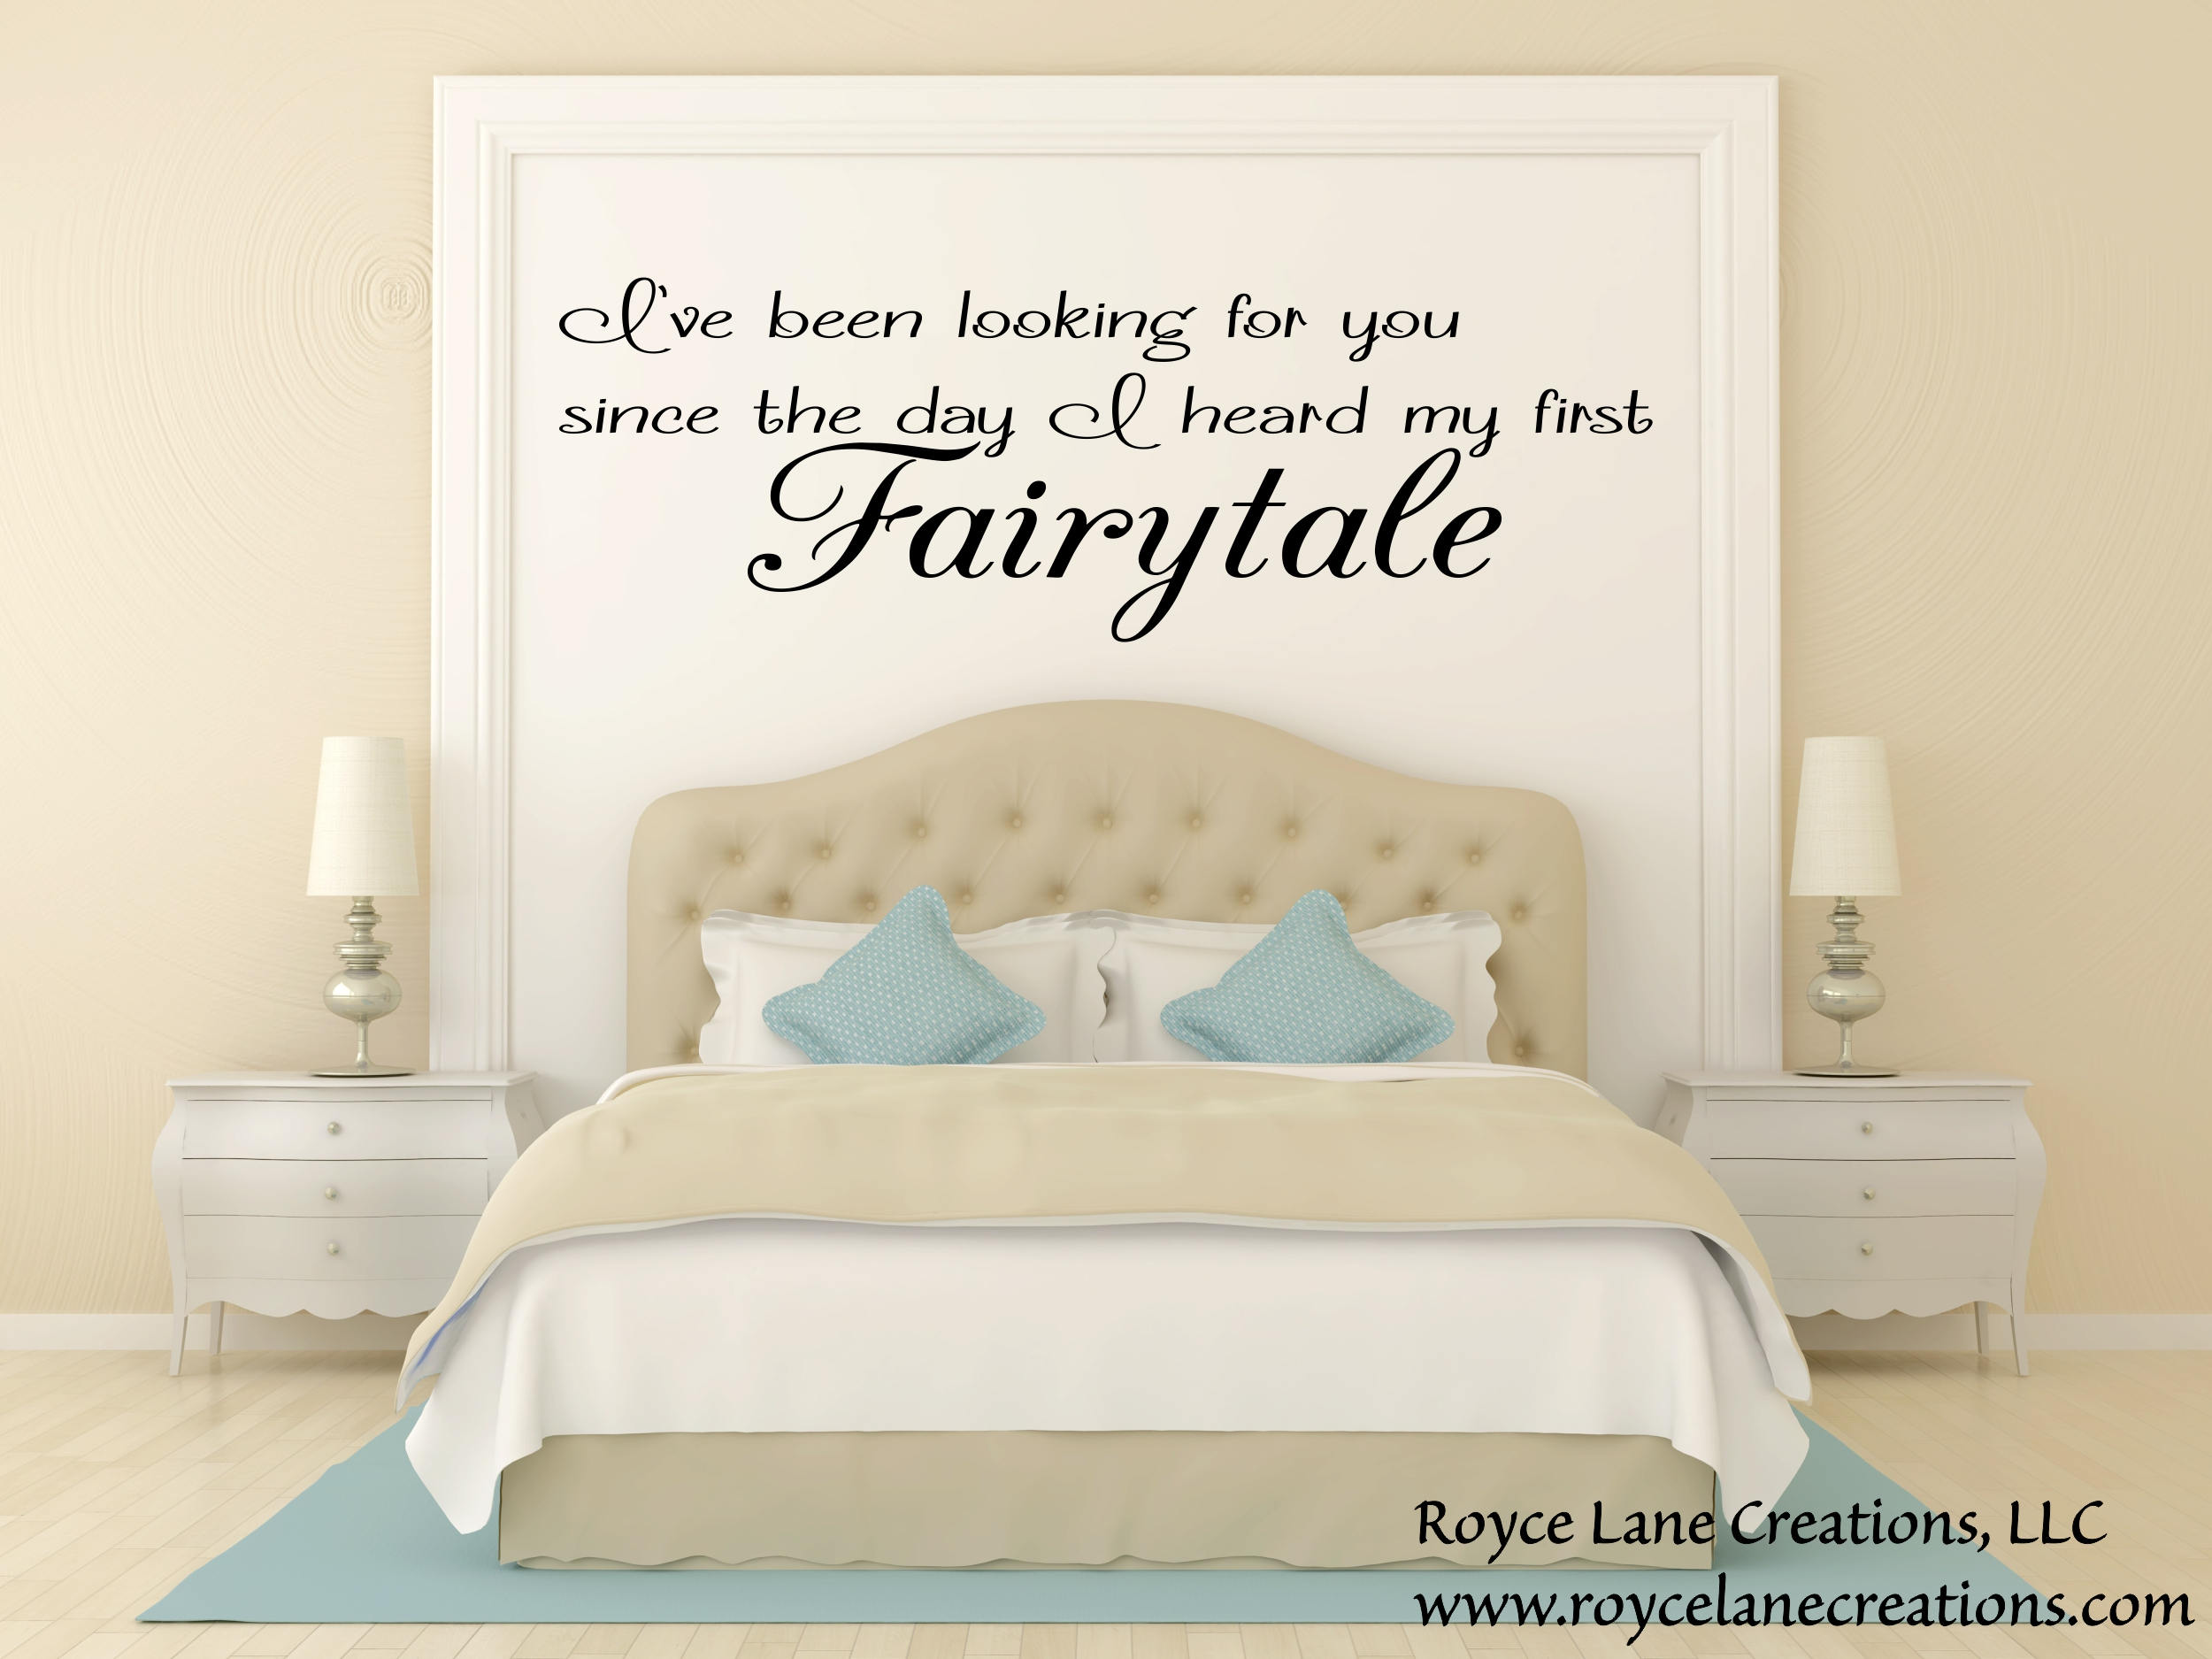 Romantic Bedroom Wall Decals fairytale quote-romantic bedroom wall decal